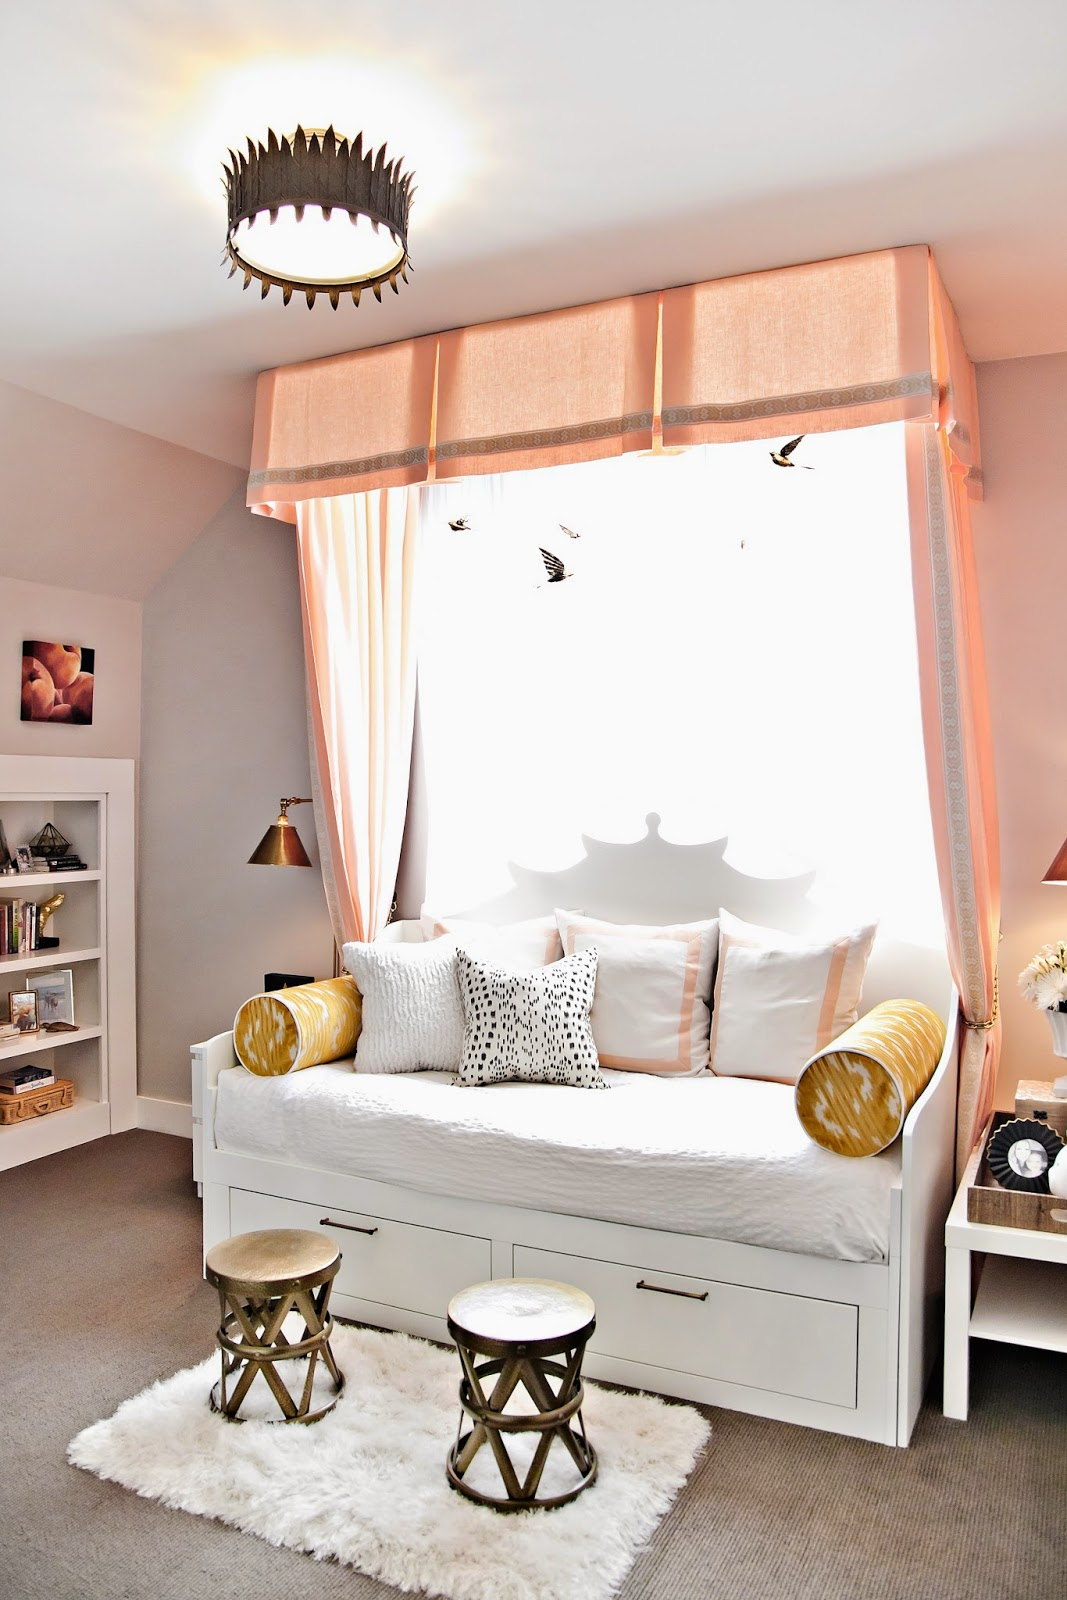 Teen Girl Room Color Scheme: Design Dump: ORC Finale: A Teen Bedroom In Peach + Mustard